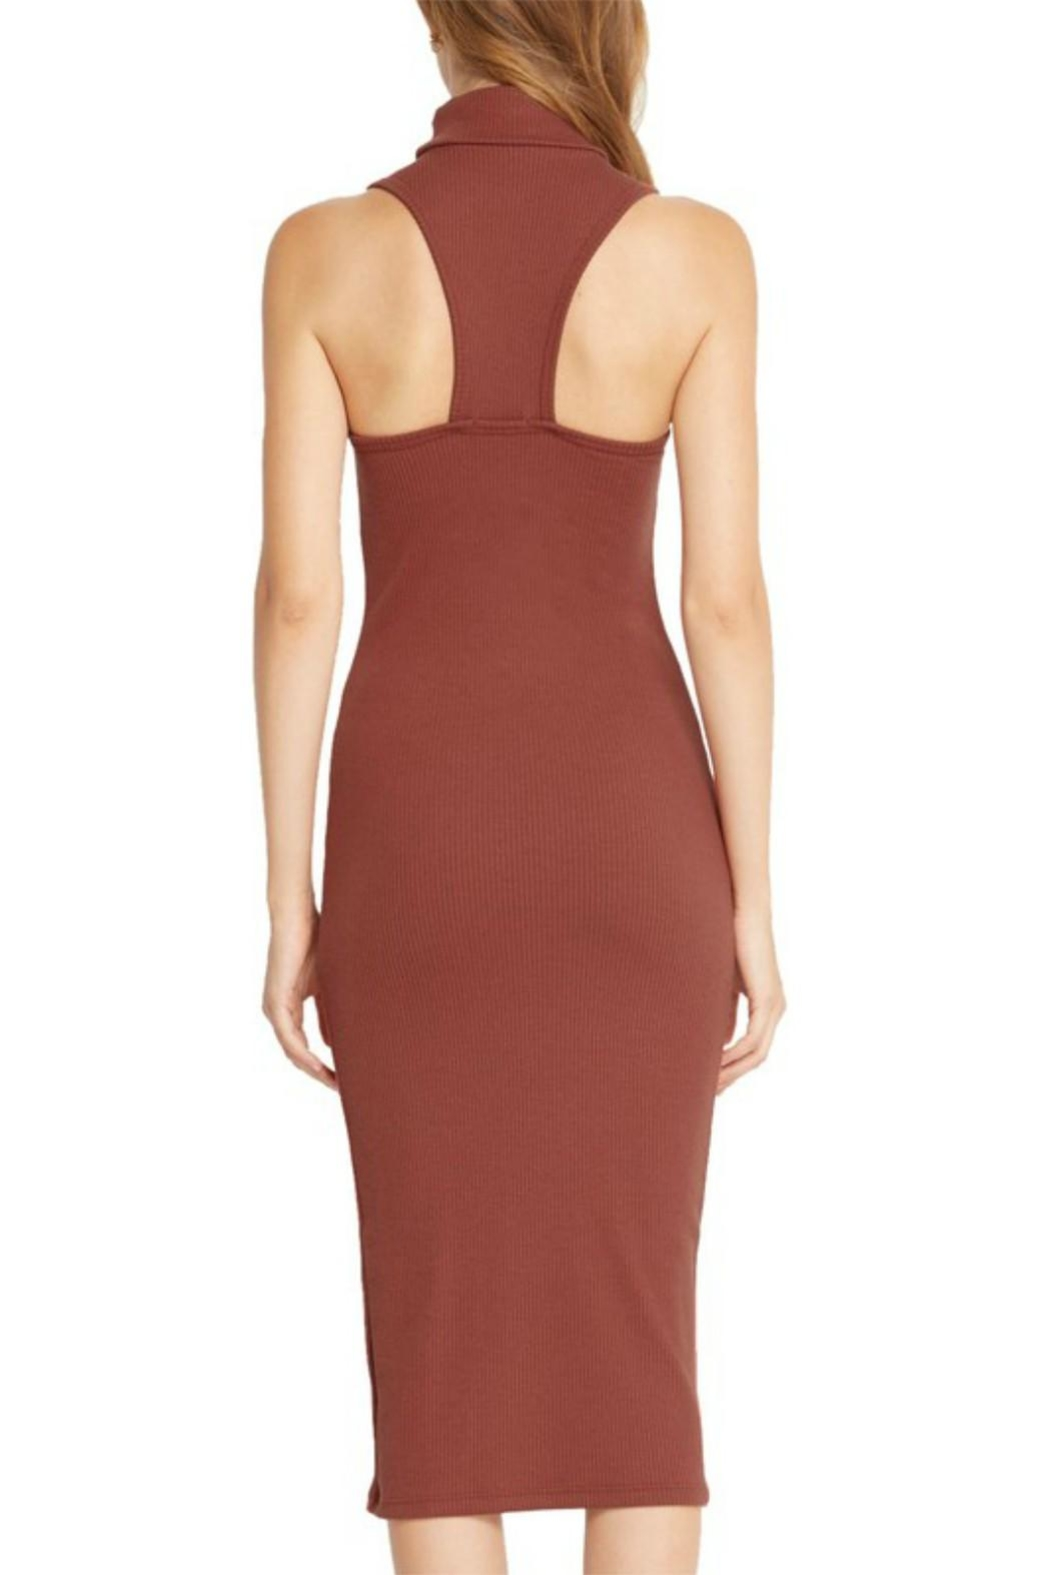 Mai Tai Rust Midi Dress - Side Cropped Image